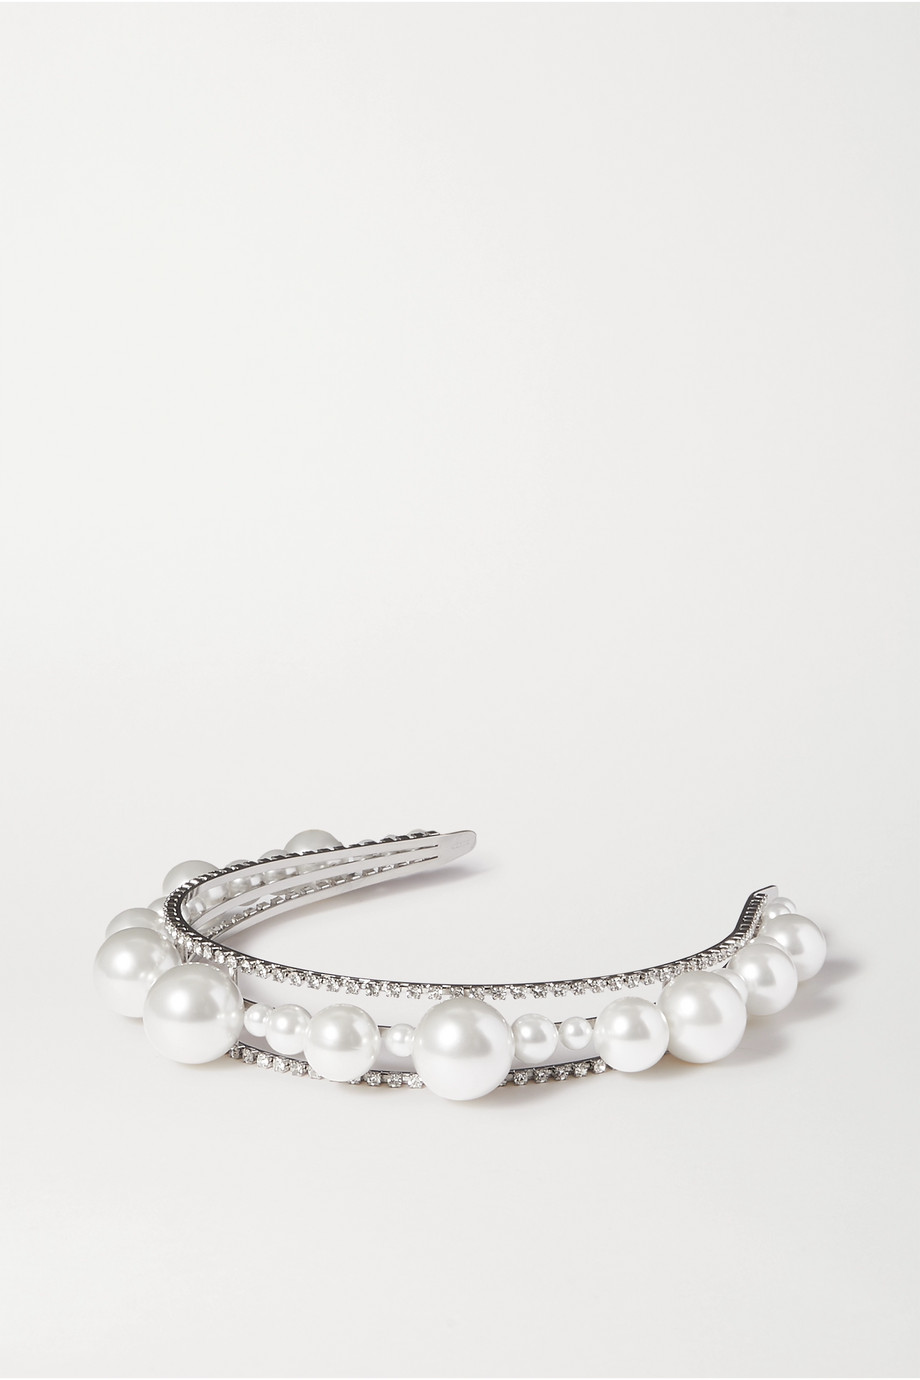 Givenchy Ariana faux pearl, Swarovski crystal and silver-tone headband